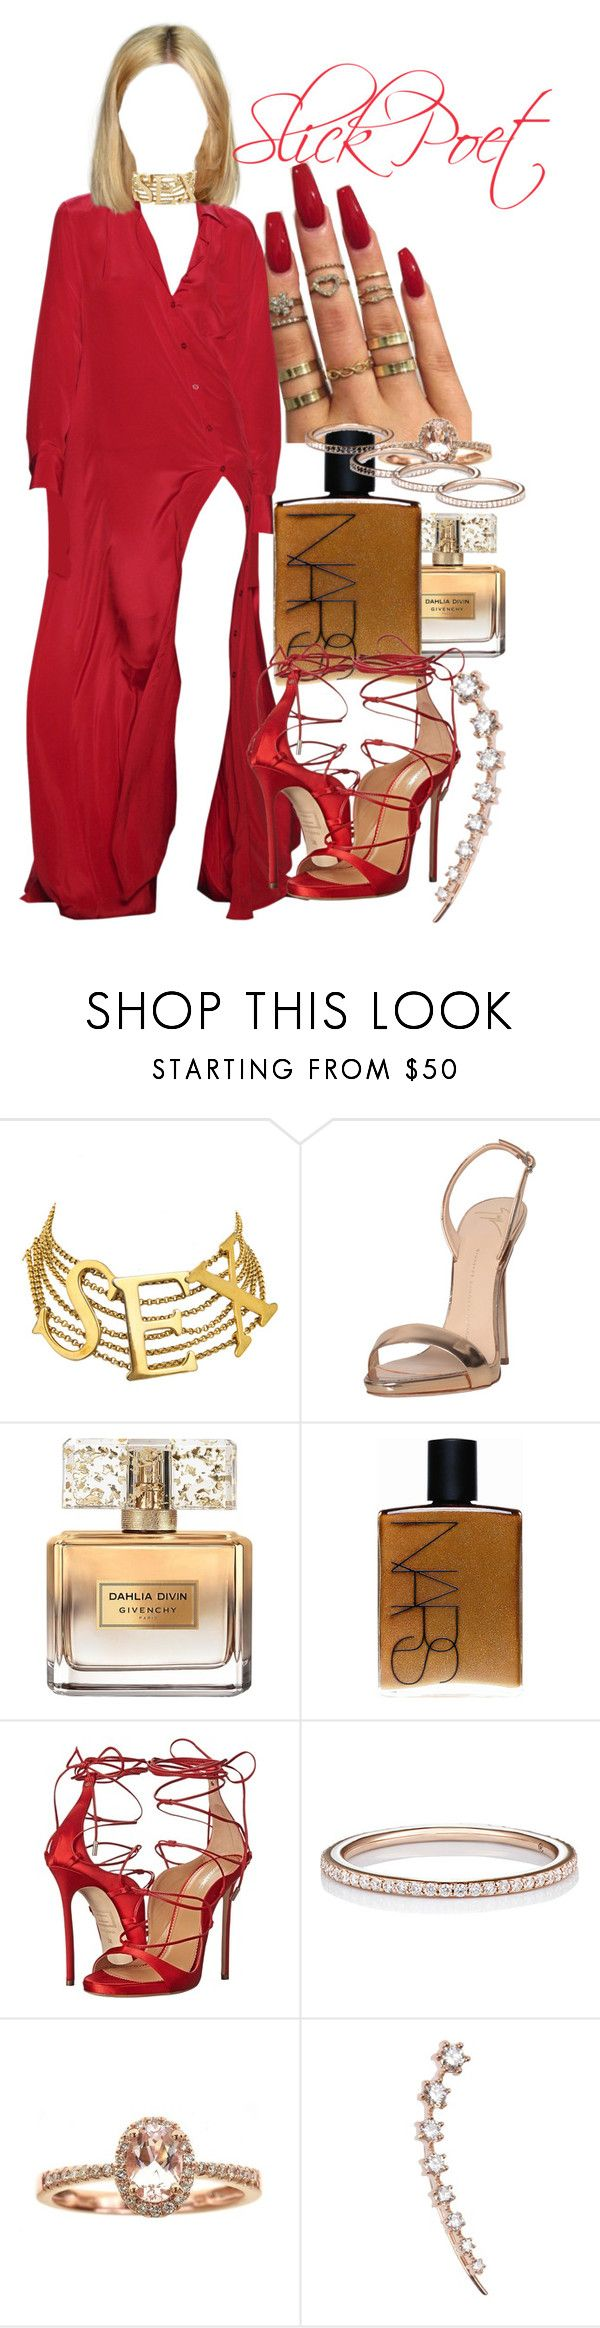 """""""Red October"""" by slickpoet ❤ liked on Polyvore featuring Dolce&Gabbana, Giuseppe Zanotti, Givenchy, NARS Cosmetics, Dsquared2, Raphaele Canot, Anika and August and Sara Weinstock"""